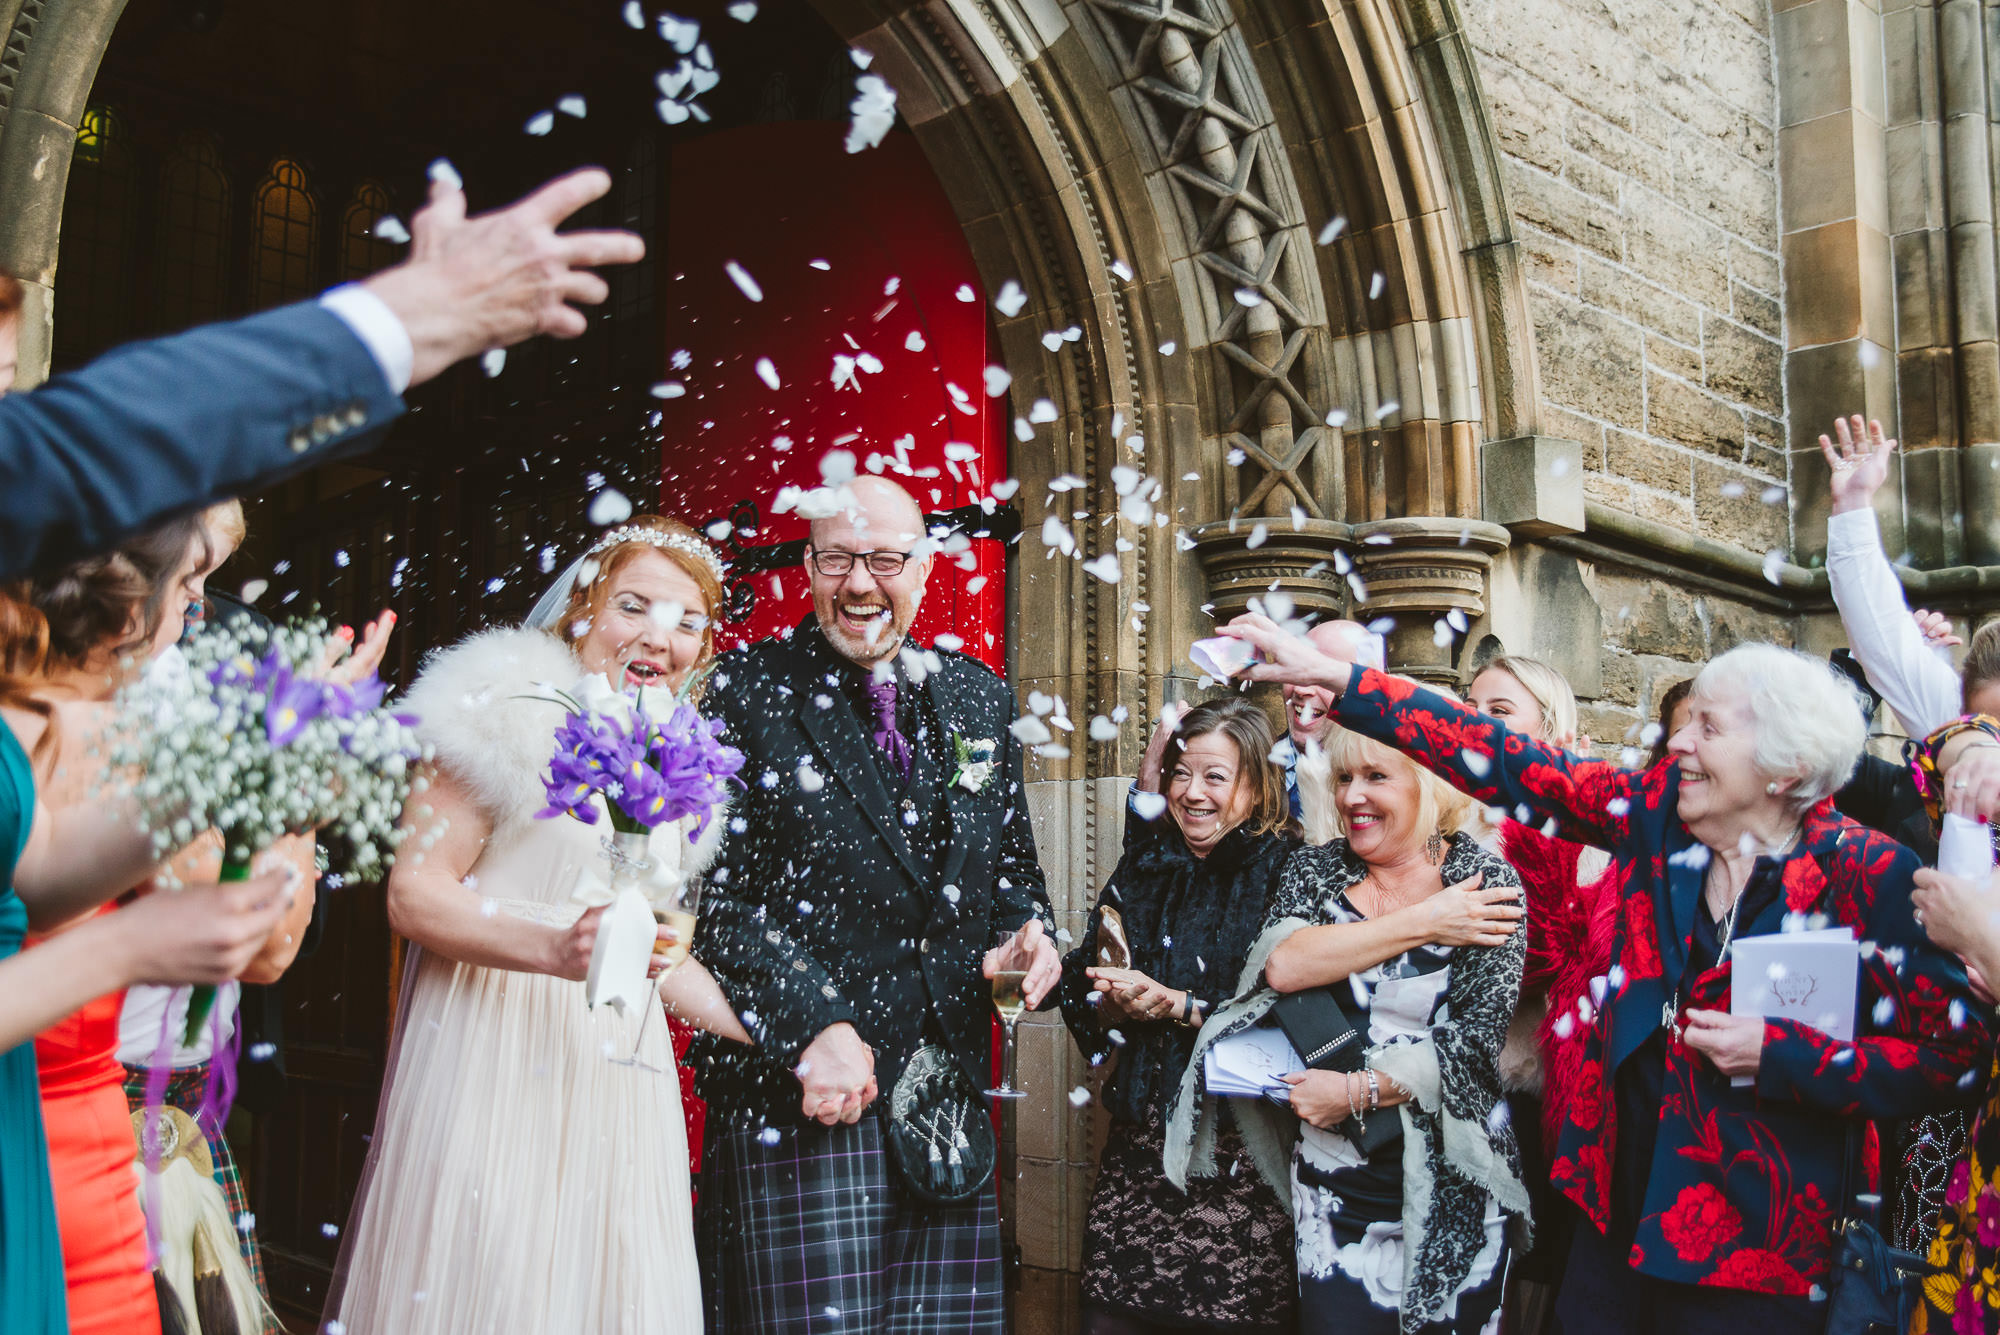 Confetti at a wedding at Mansfield Traquair in December